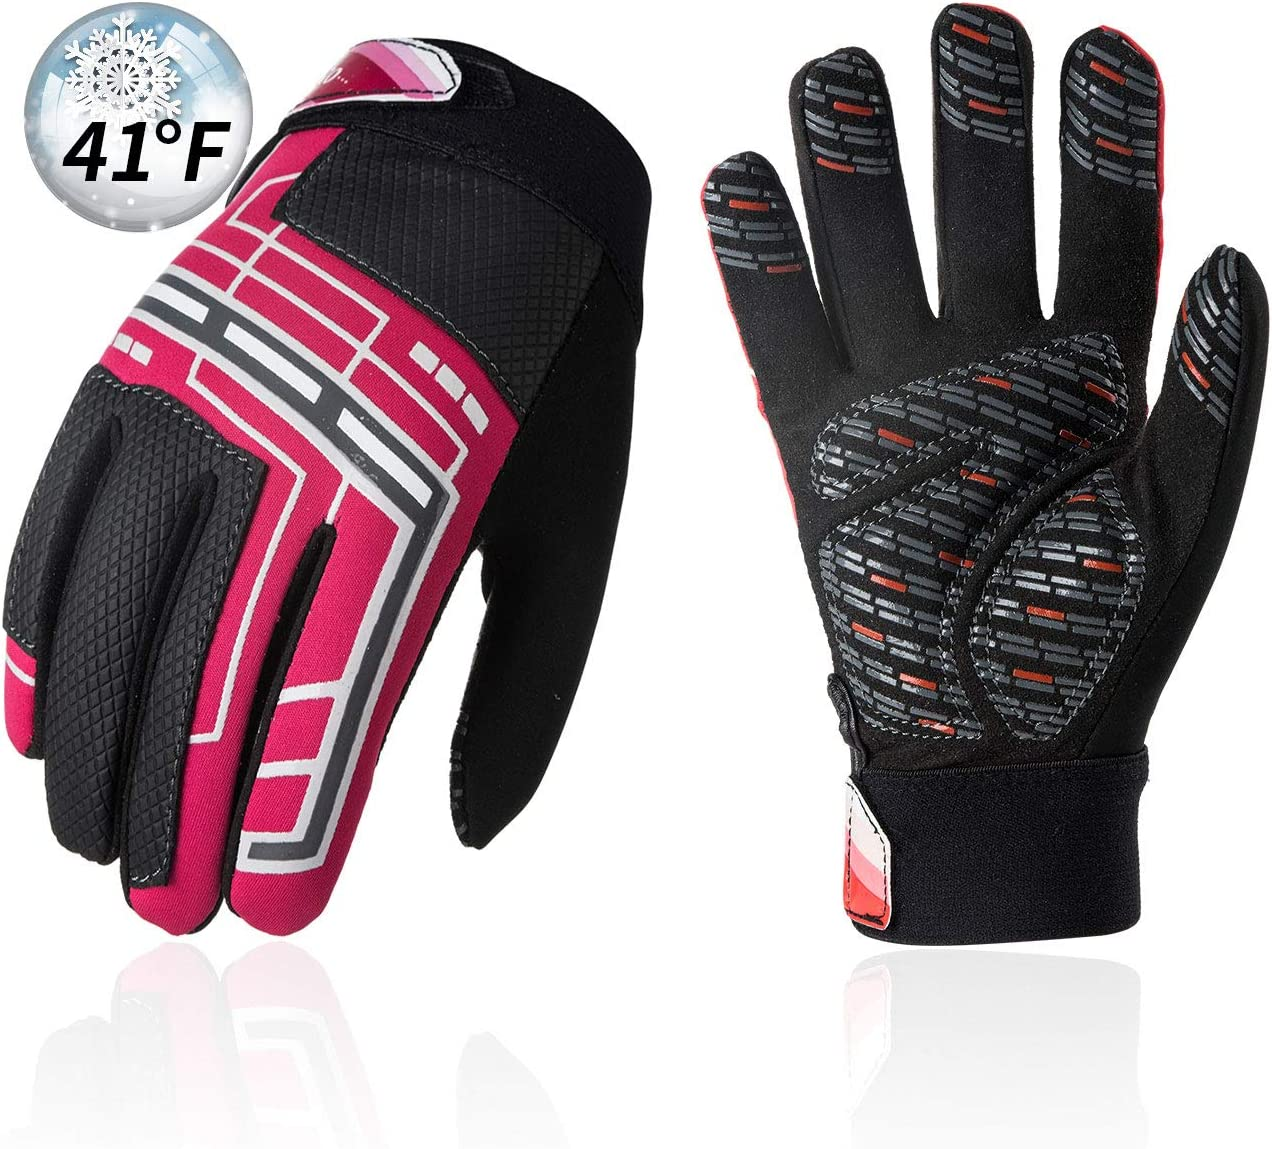 Vgo... Kids & Youth 41℉ or Above Synthetic Leather Cycling Gloves w/Polar Fleece, Memory Foam for Impact Absorption (SL2505)